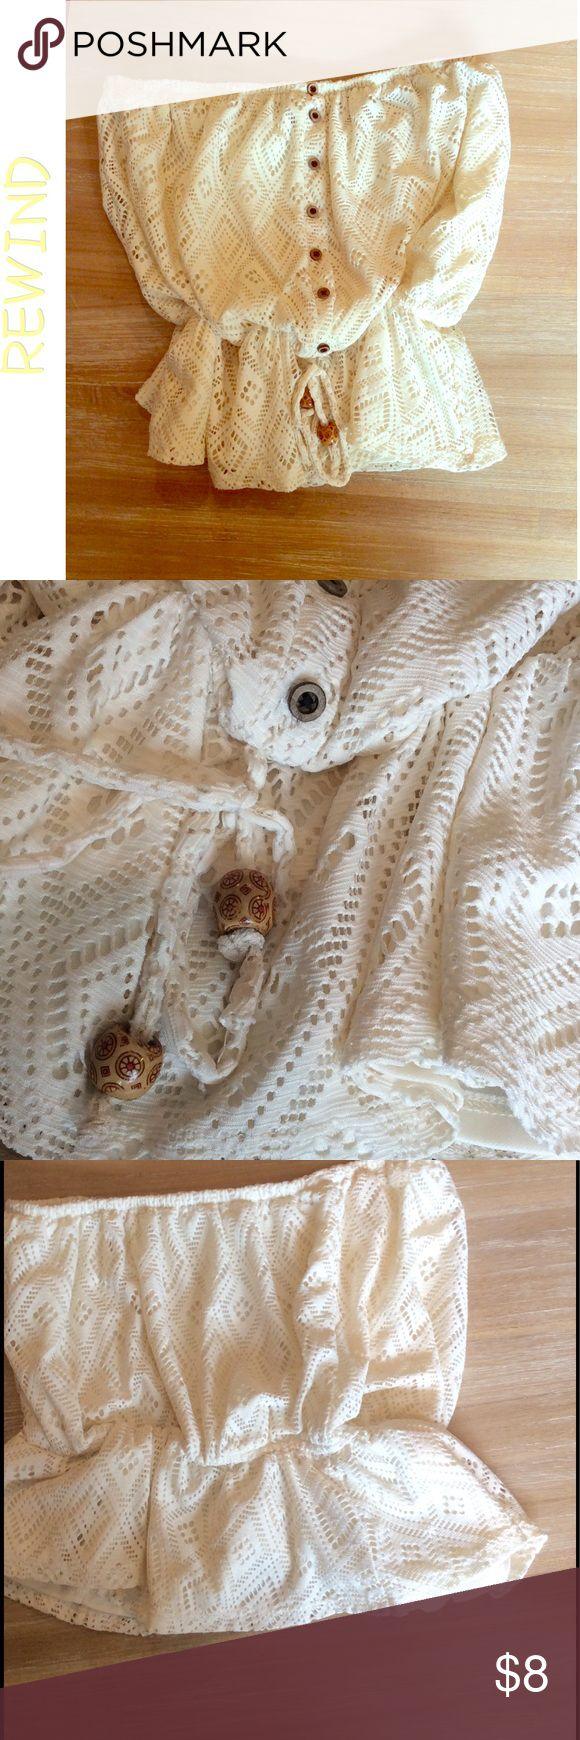 3 for $25🎁REWIND Crochet Tube Top - Mint ✖️Firm unless bundled✖️Gorgeous bohemian cream colored overlay crochet tube tub. Fully lined . Wood buttons ( just for embellishment) and adjustable drawstring waist adorned with large boho style wooden beads . Excellent condition. Rewind Tops